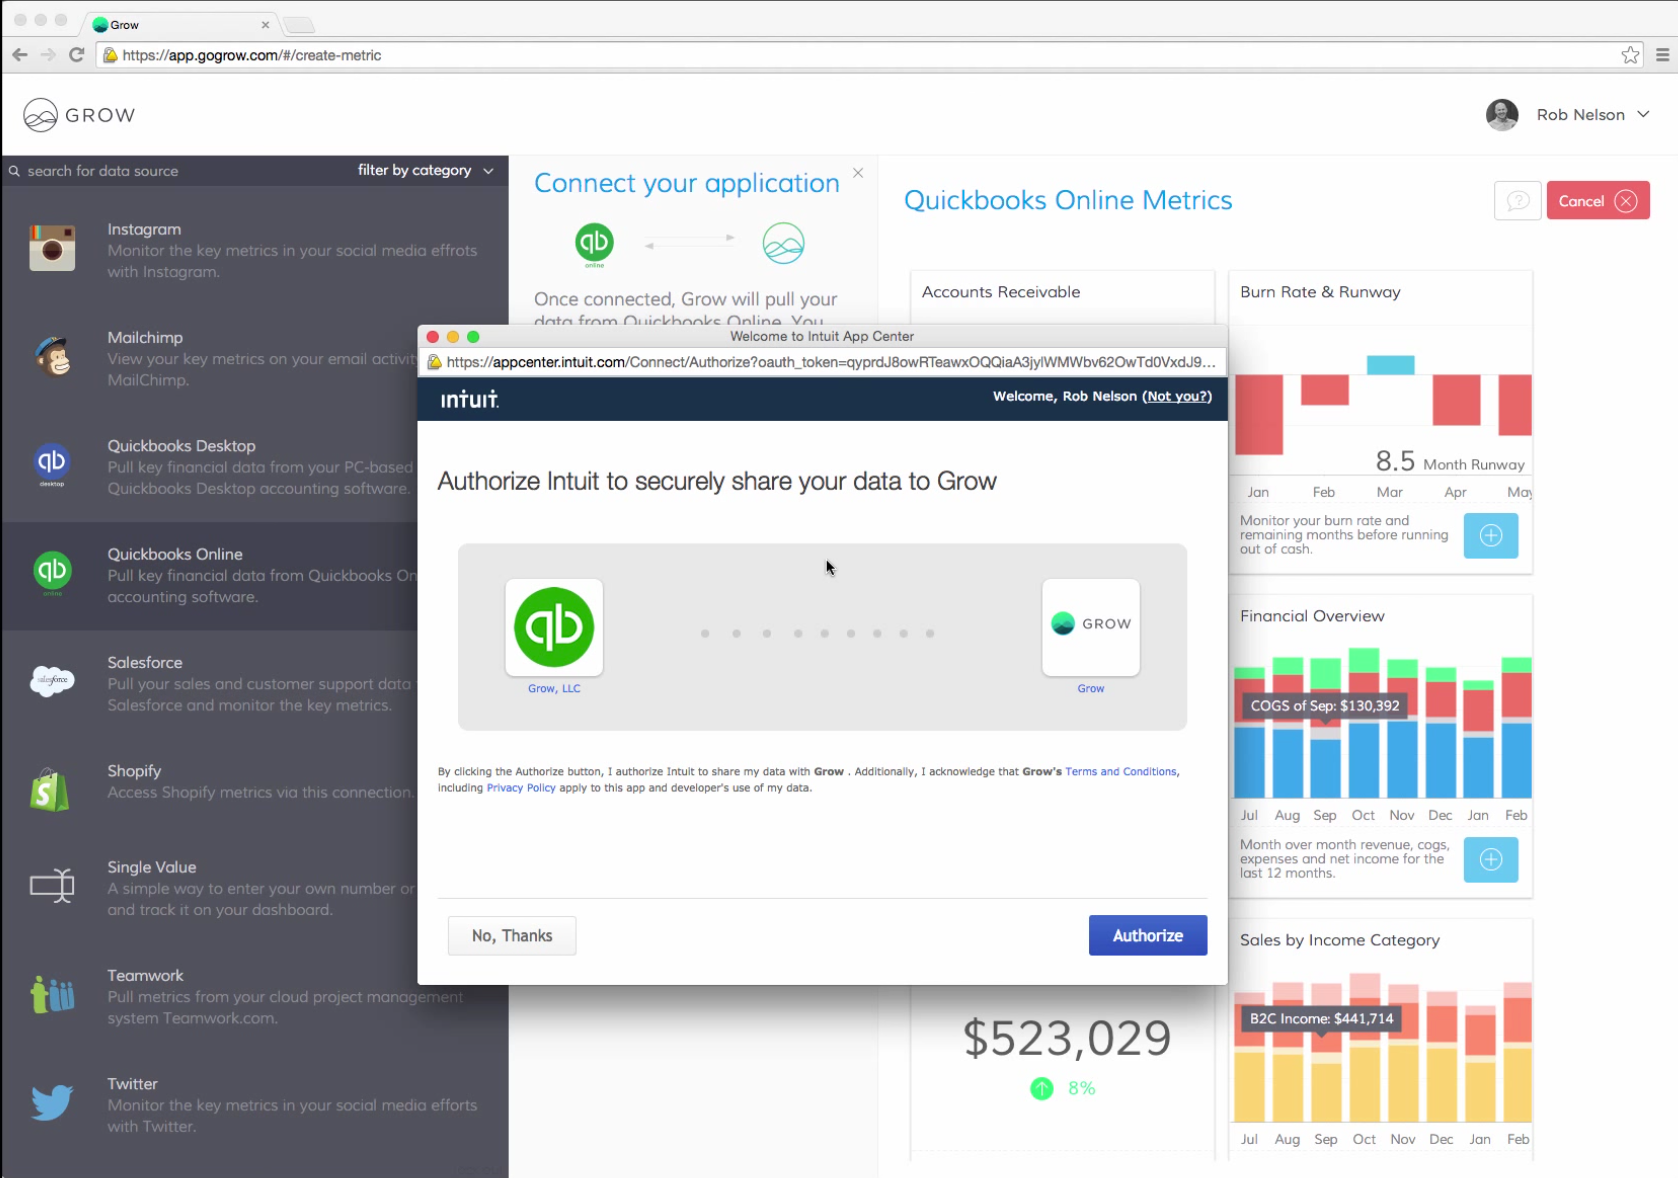 Grow Software - A collection of pre-loaded data source integrations allow for authorization and connection with apps such as QuickBooks